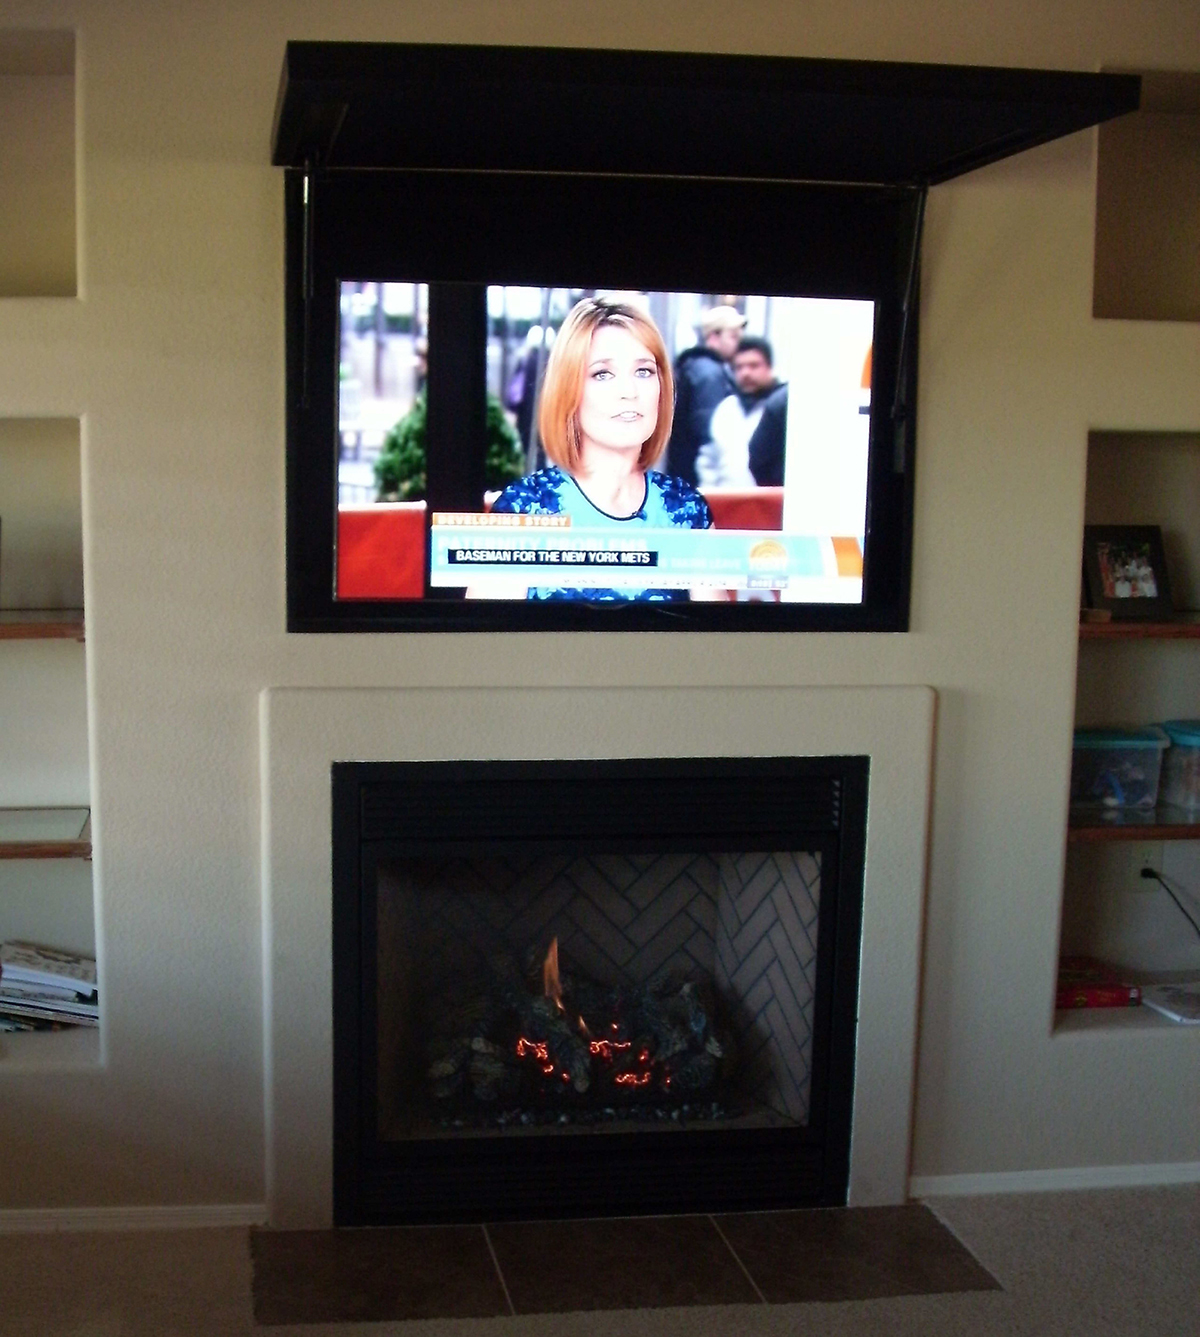 Fireplace Xtrordinair with TVCoverUp opened above fireplace